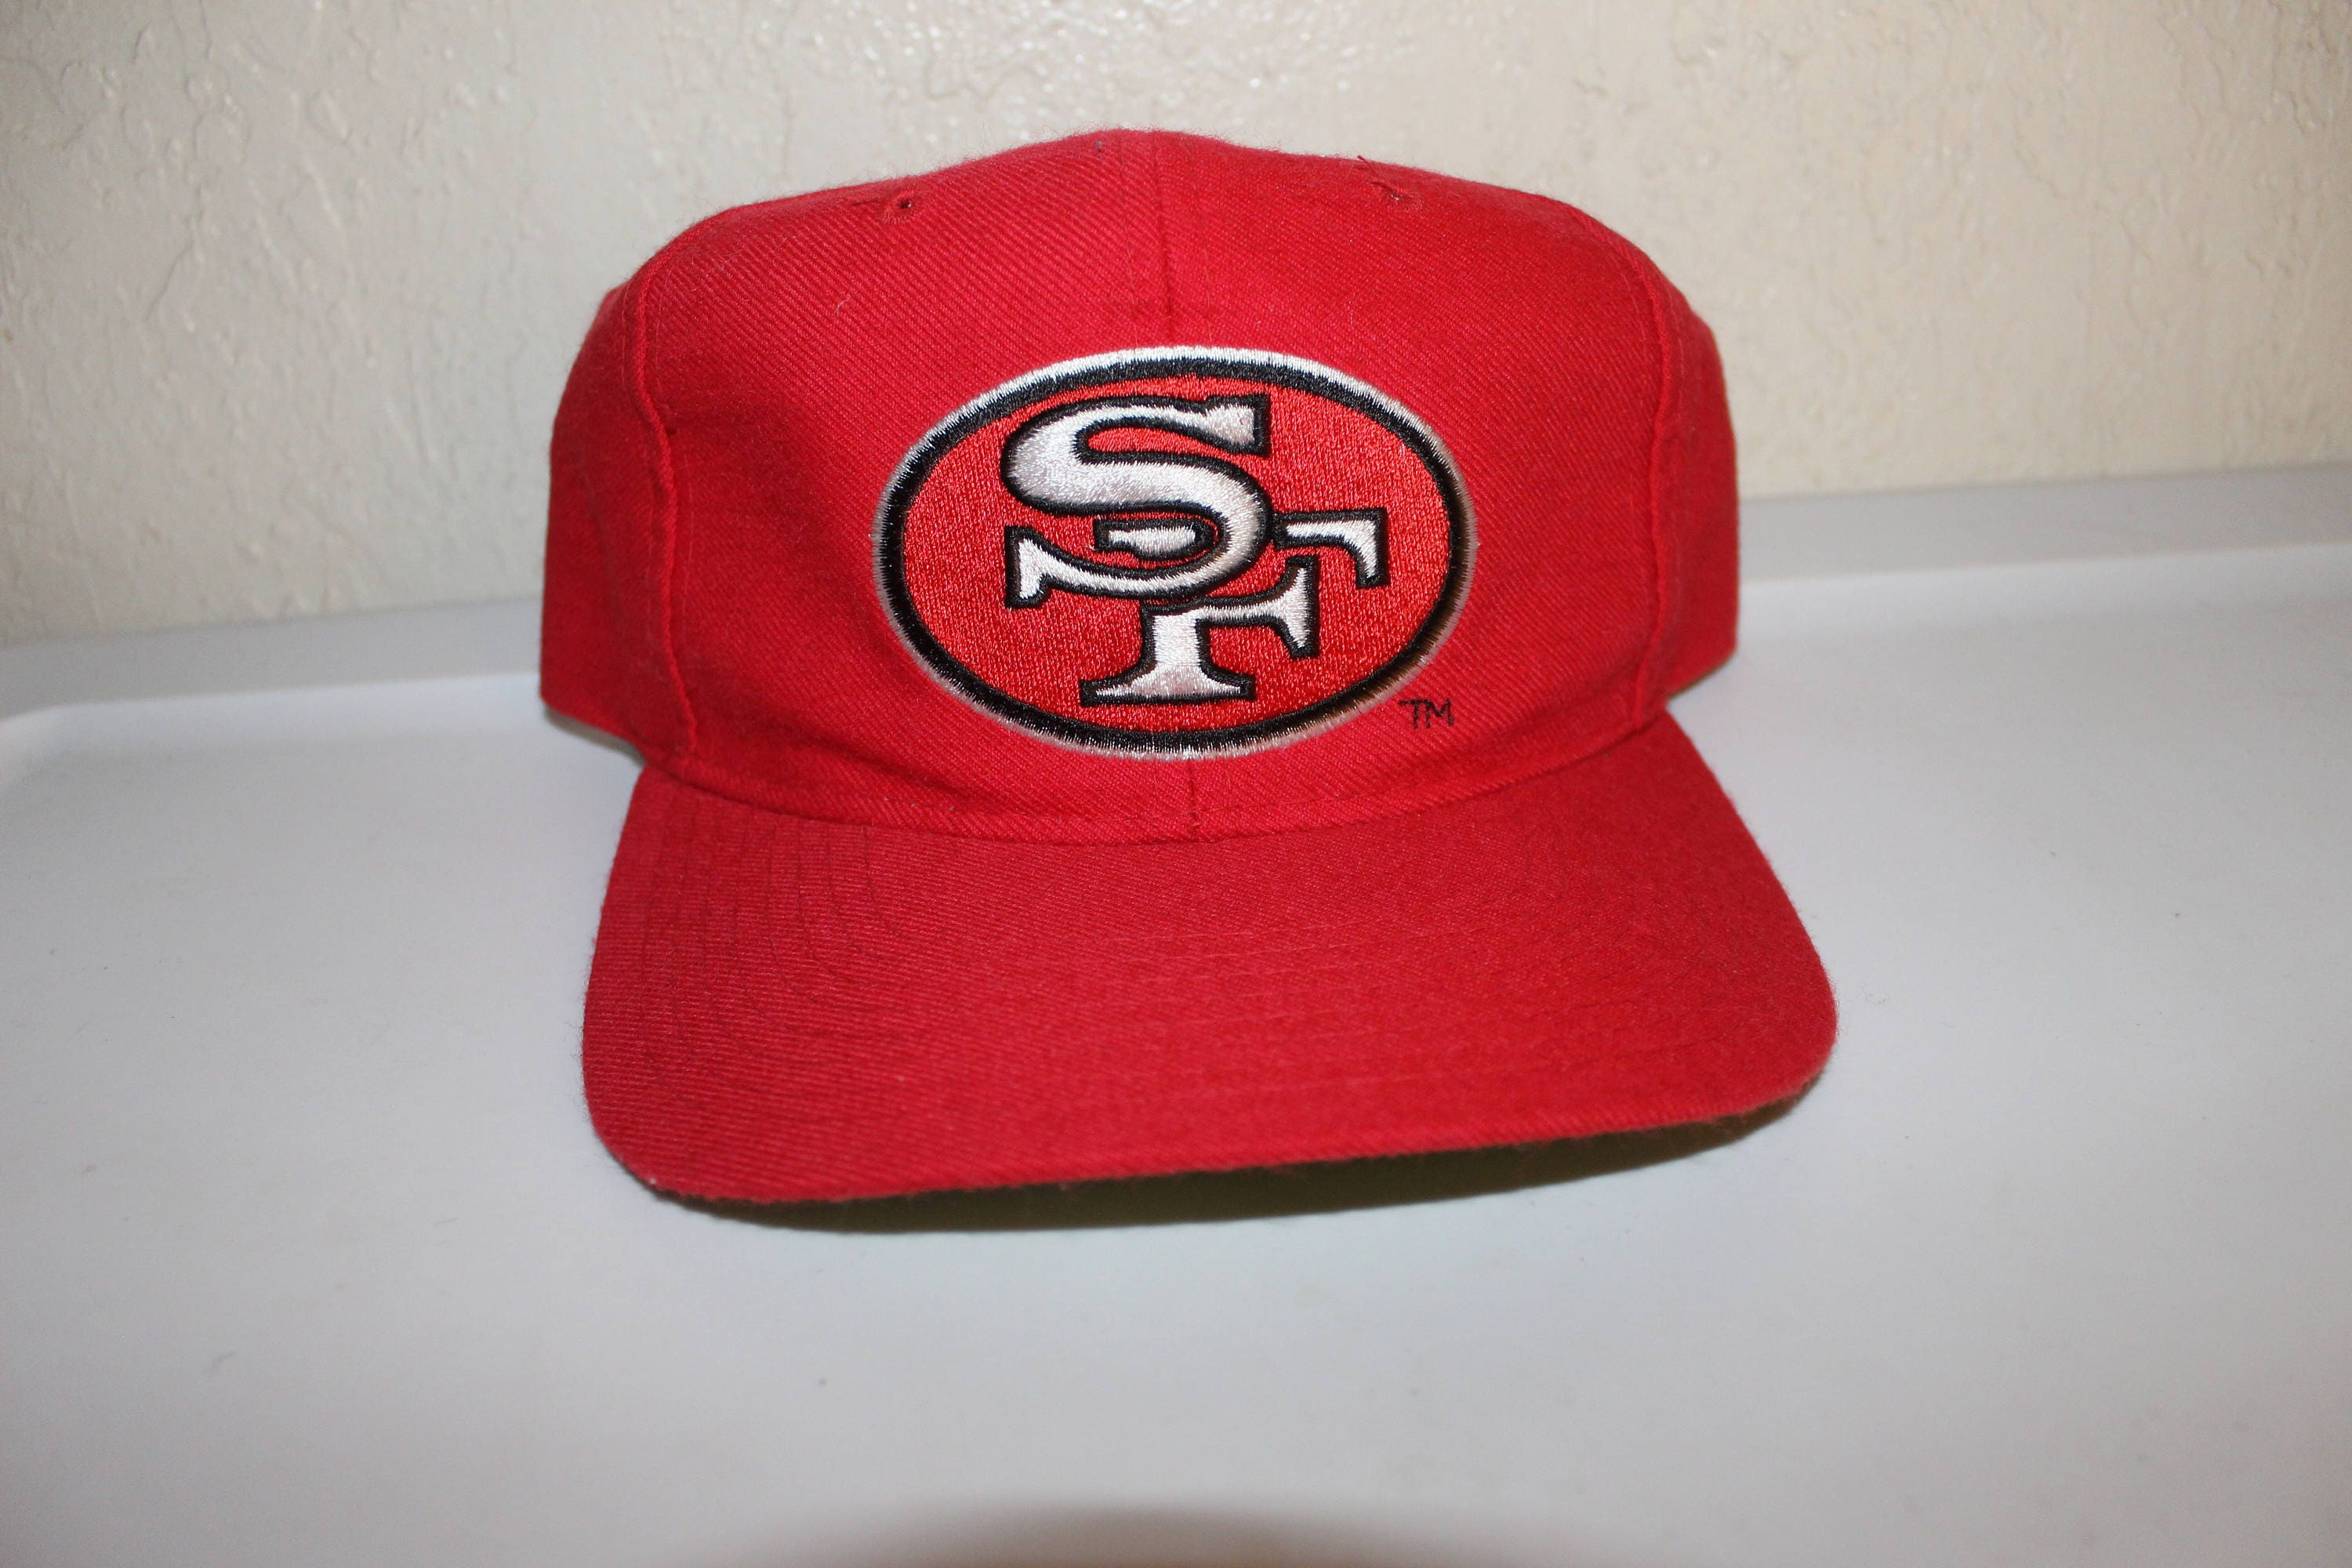 0dc13f955a3 ... Hat CFL Canadian Football League Cap Lucky Stripes Style Ballcap. Old  Price  35.00. Vintage 90 s San Francisco 49ers Snapback by New Era